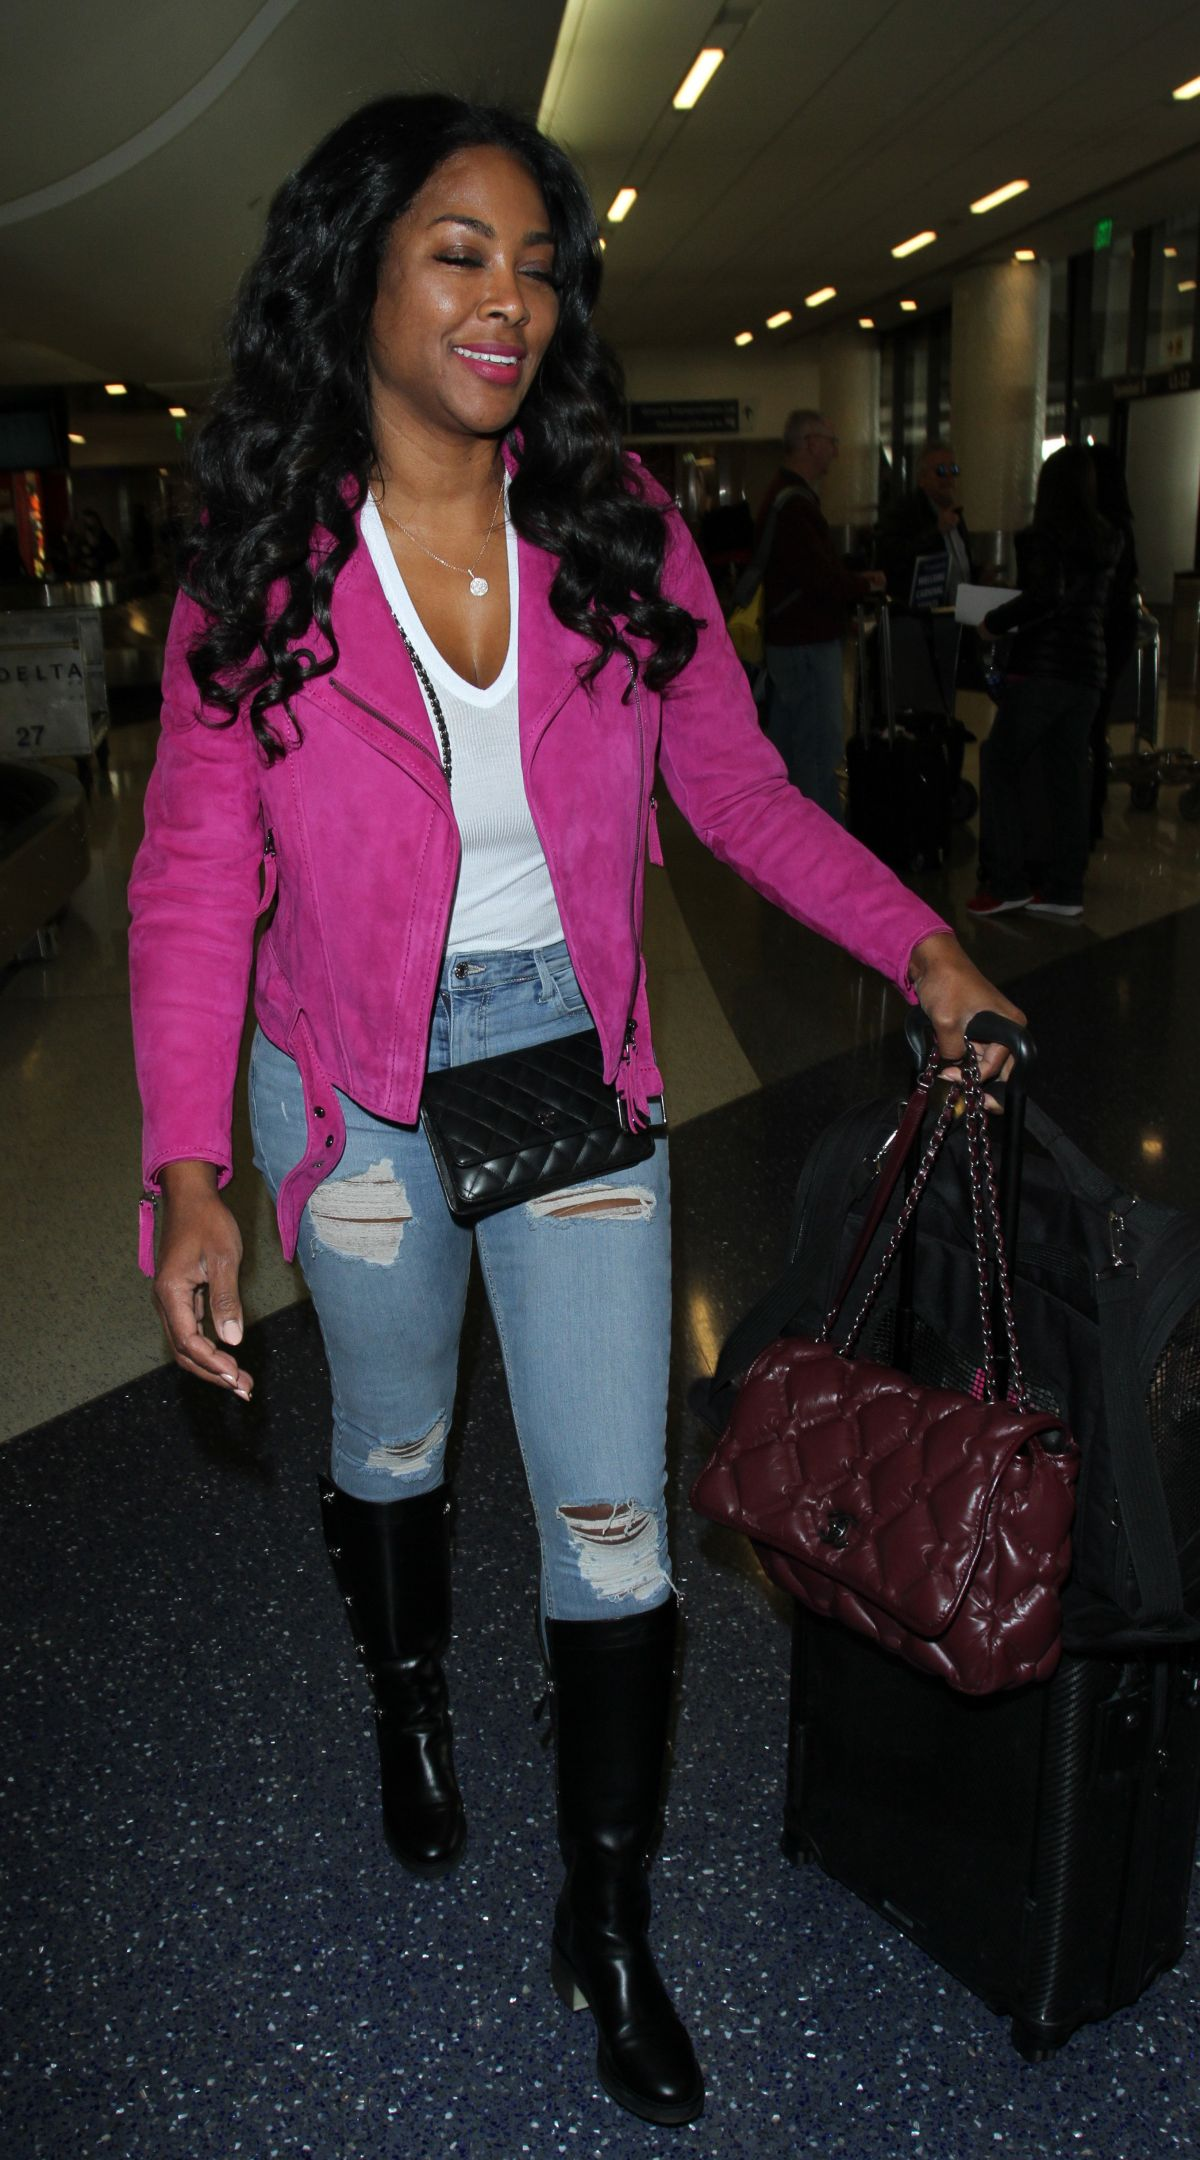 KENYA MOORE at LAX Airport in Los Angeles 12/14/2016